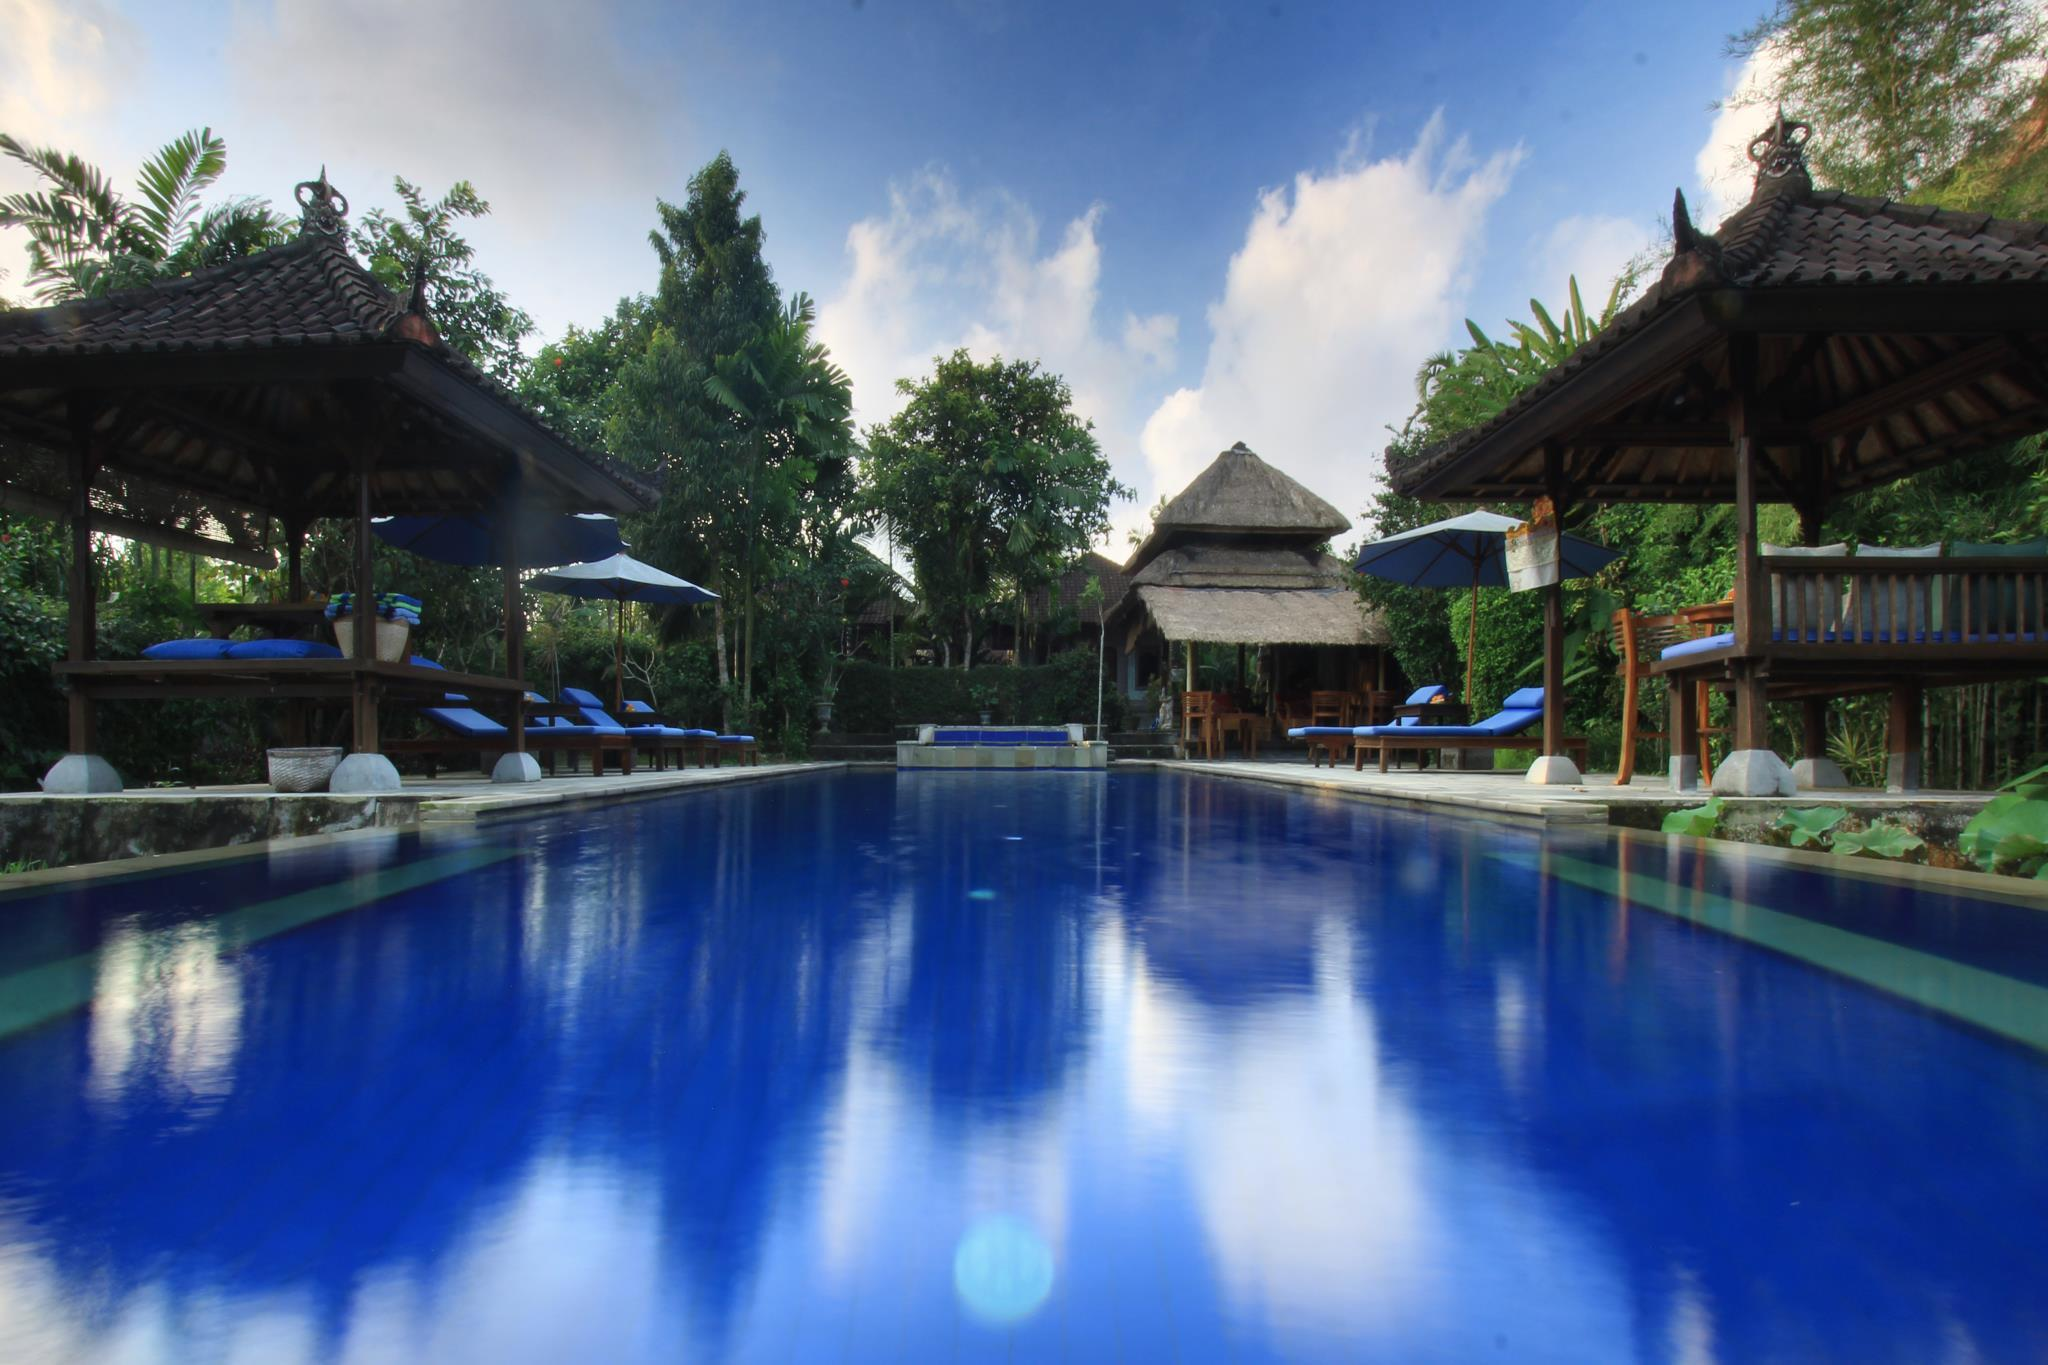 Nara Ubud Cottage ホテル詳細